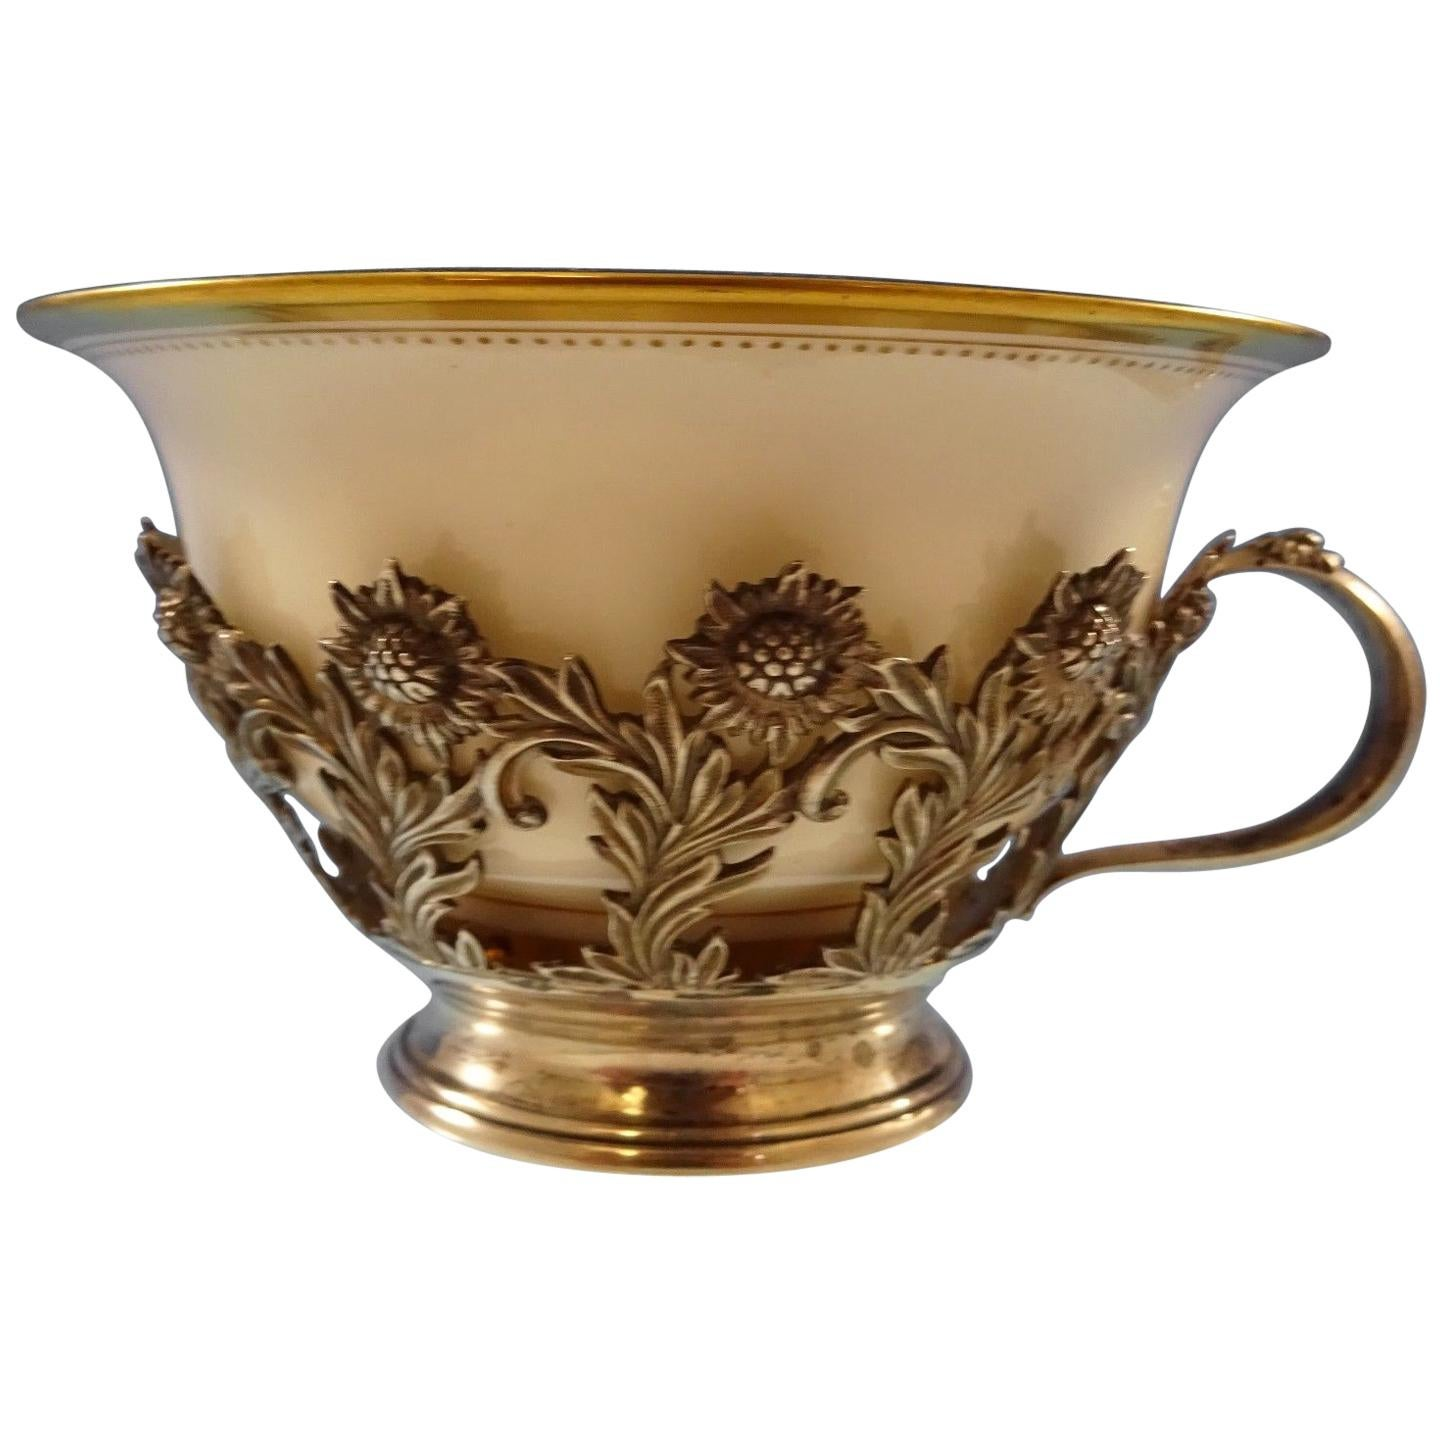 Chrysanthemum by Tiffany & Co. Sterling Silver Tea Cup with Lenox Liner